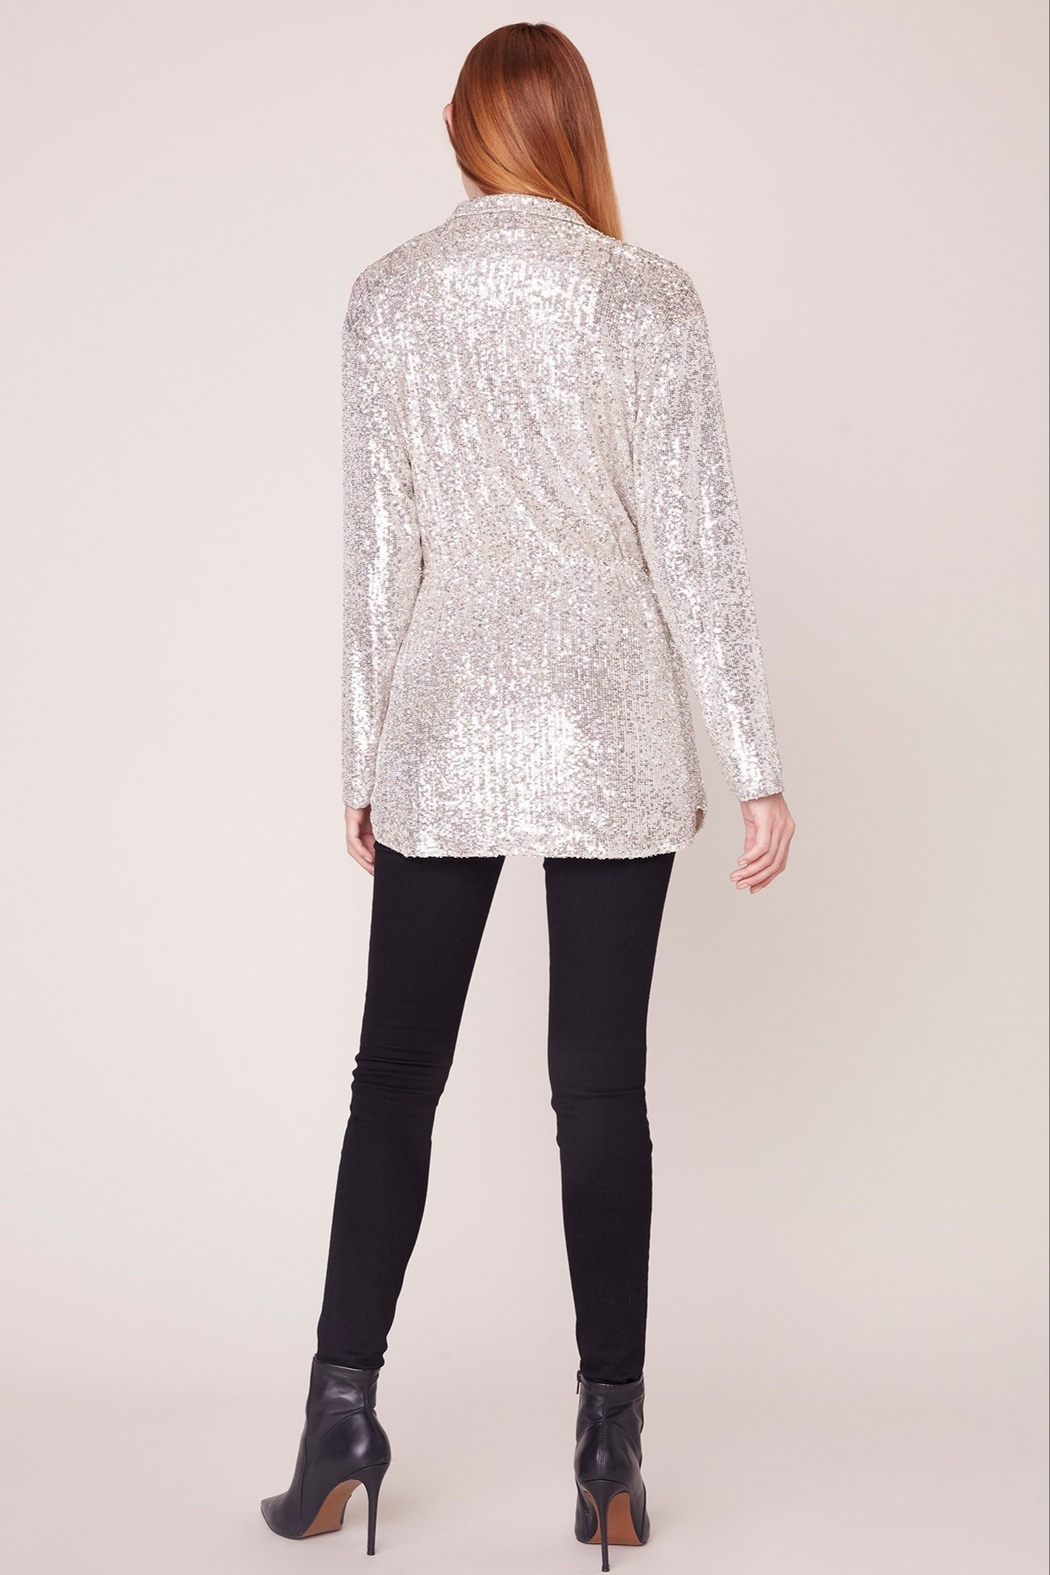 BB Dakota Sequin Zip Up Jacket - Back Cropped Image